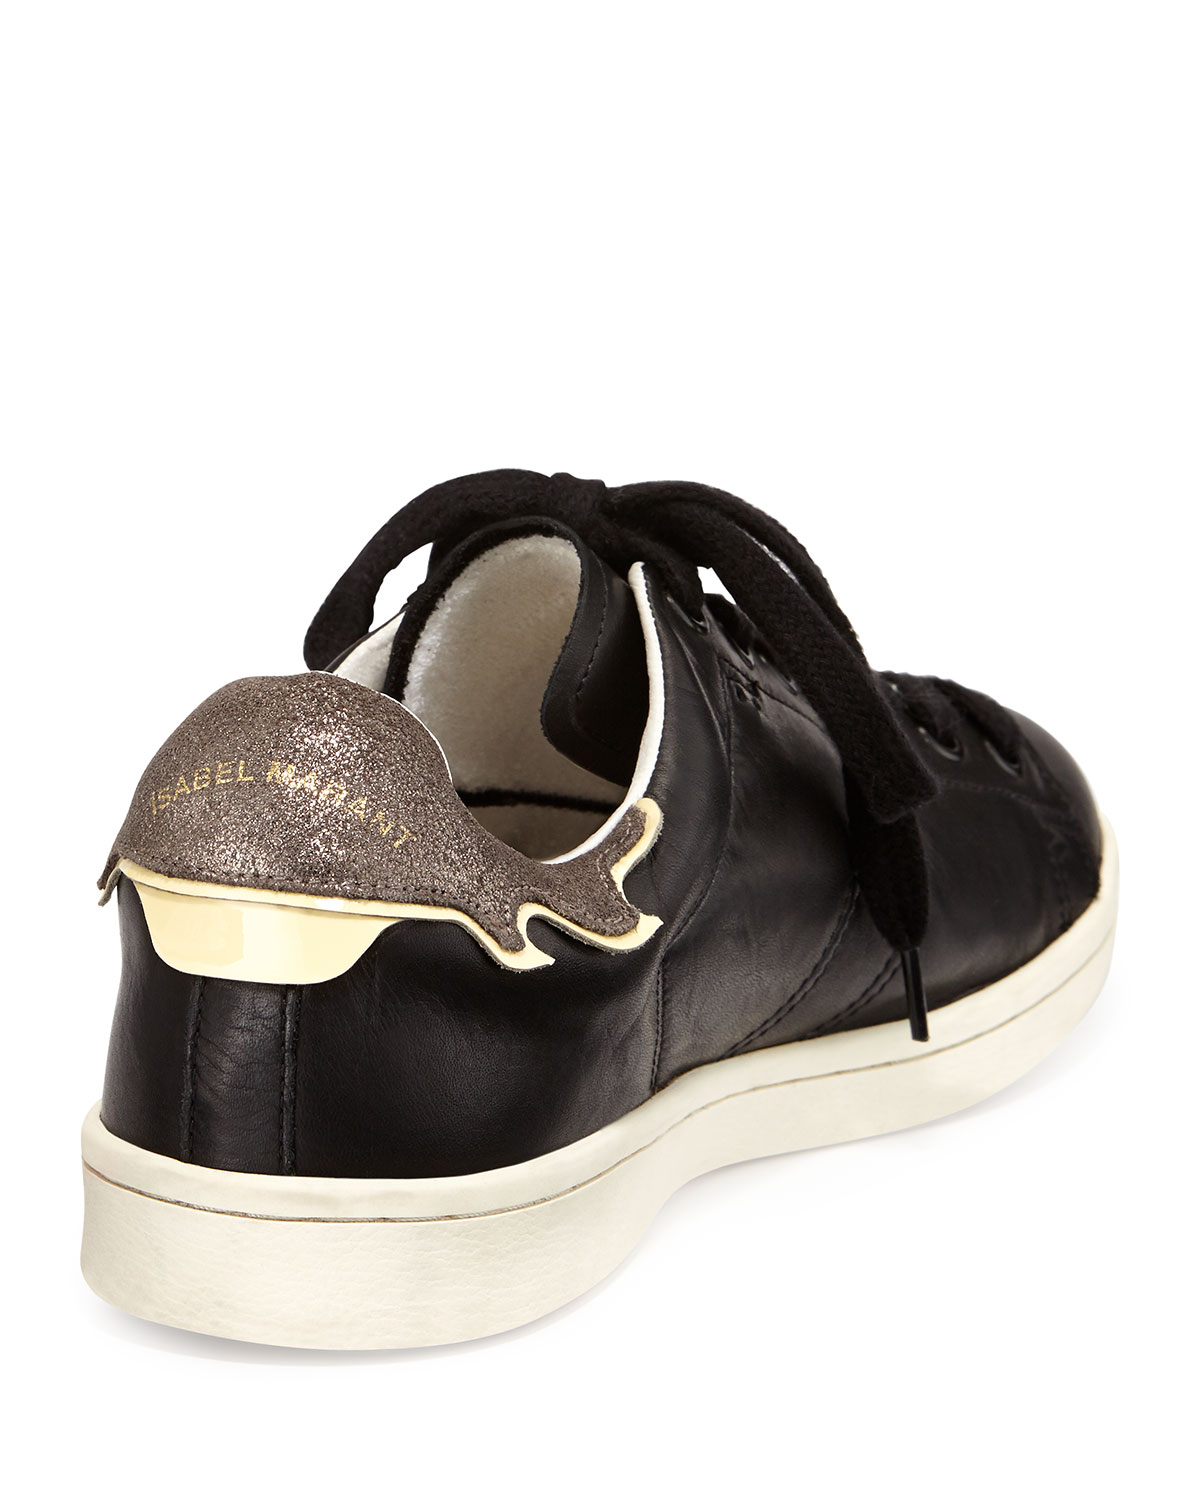 c7cbc00db3e Isabel Marant Flame-detailed Leather Low-top Sneaker in Black - Lyst